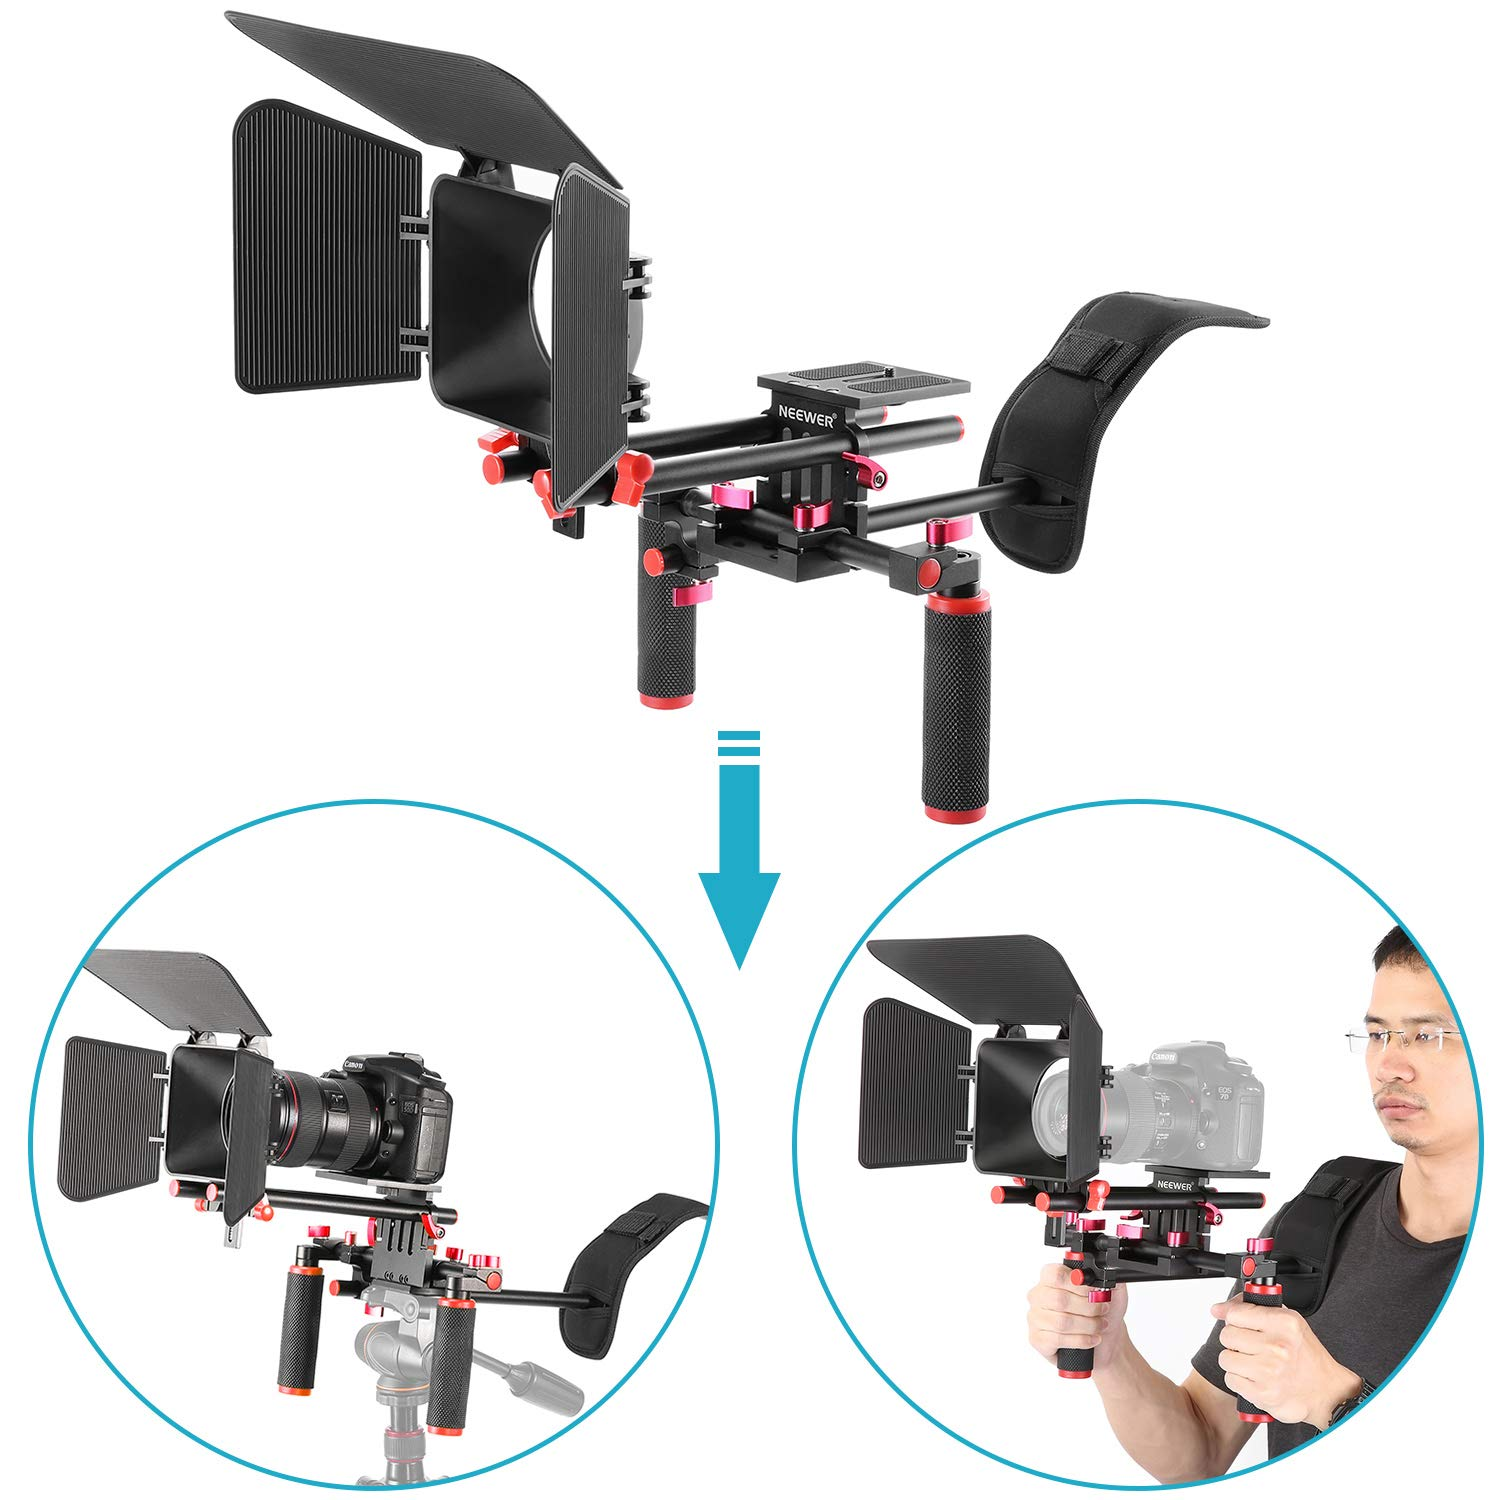 Neewer Camera Movie Video Making Rig System Film-Maker Kit..